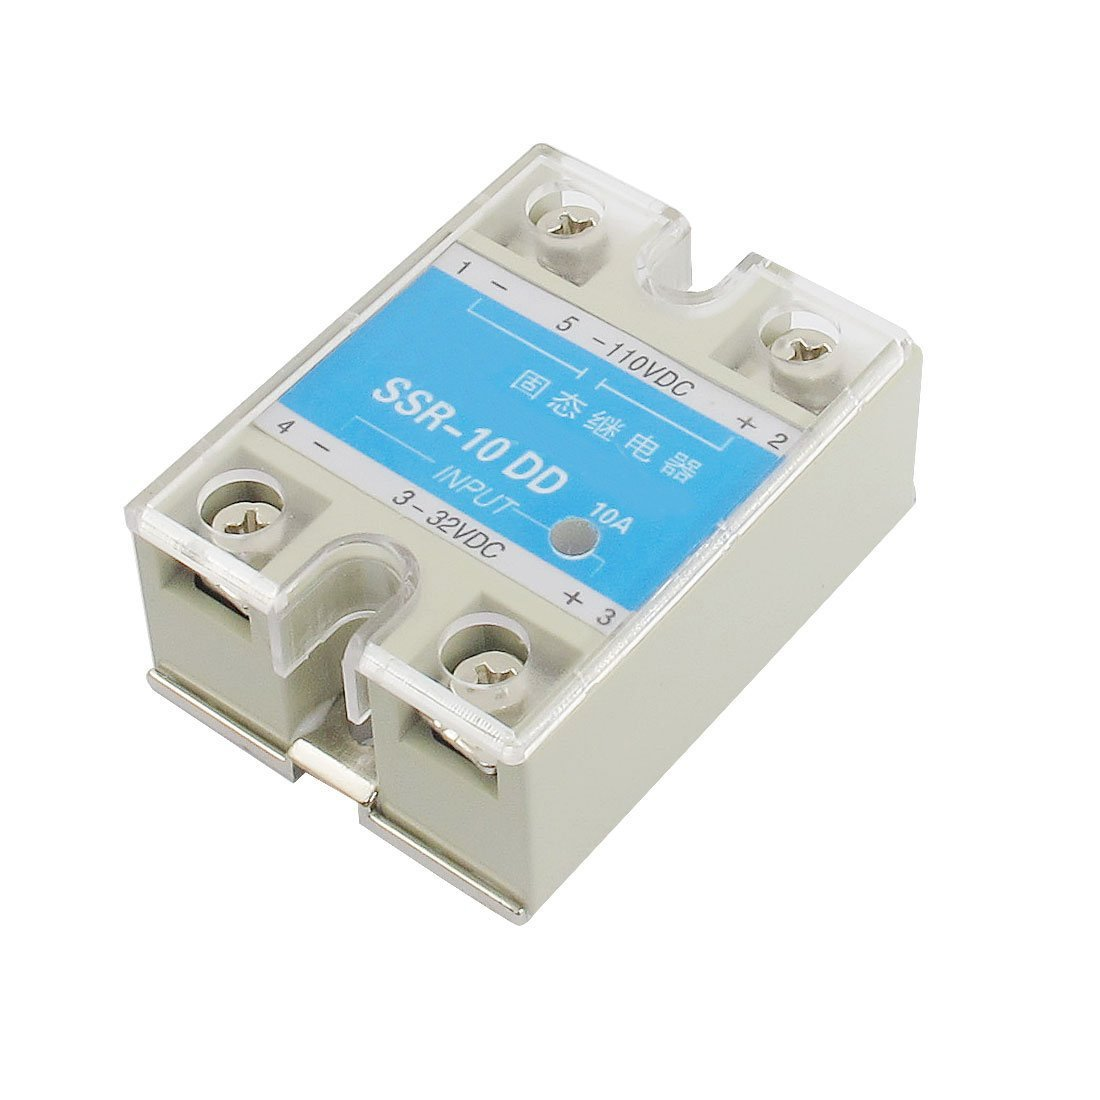 SSR-10DD DC to DC Covered Solid State Module Relay DC 3-32V DC 5-110V SODIAL(R)